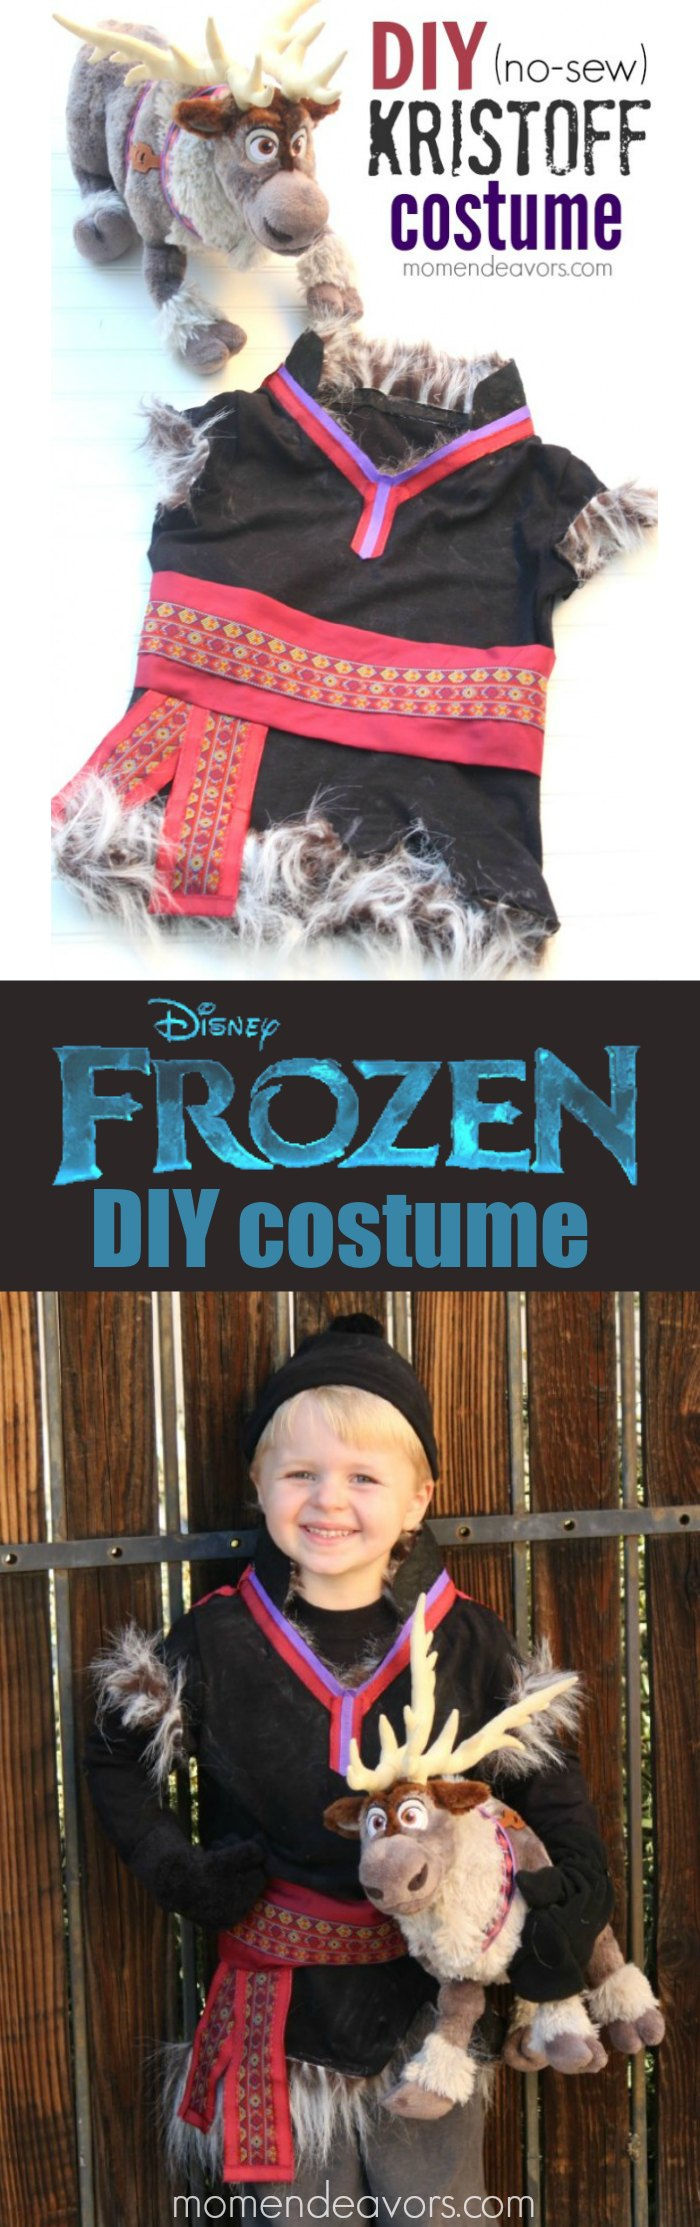 DIY Disney FROZEN Kristoff Costume